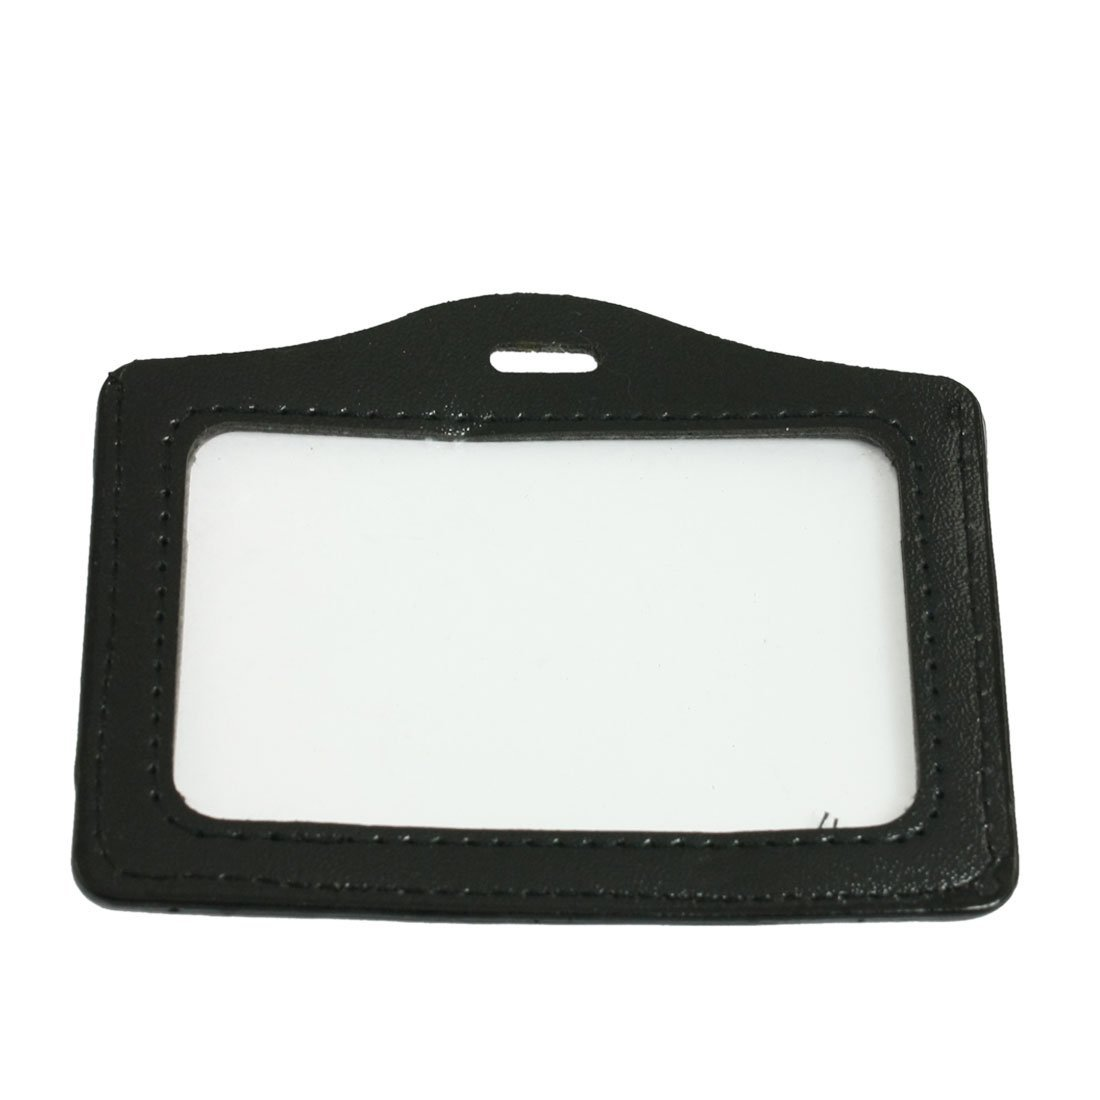 Wholesale 25Pcs Black Clear Business ID Card Badge Holder